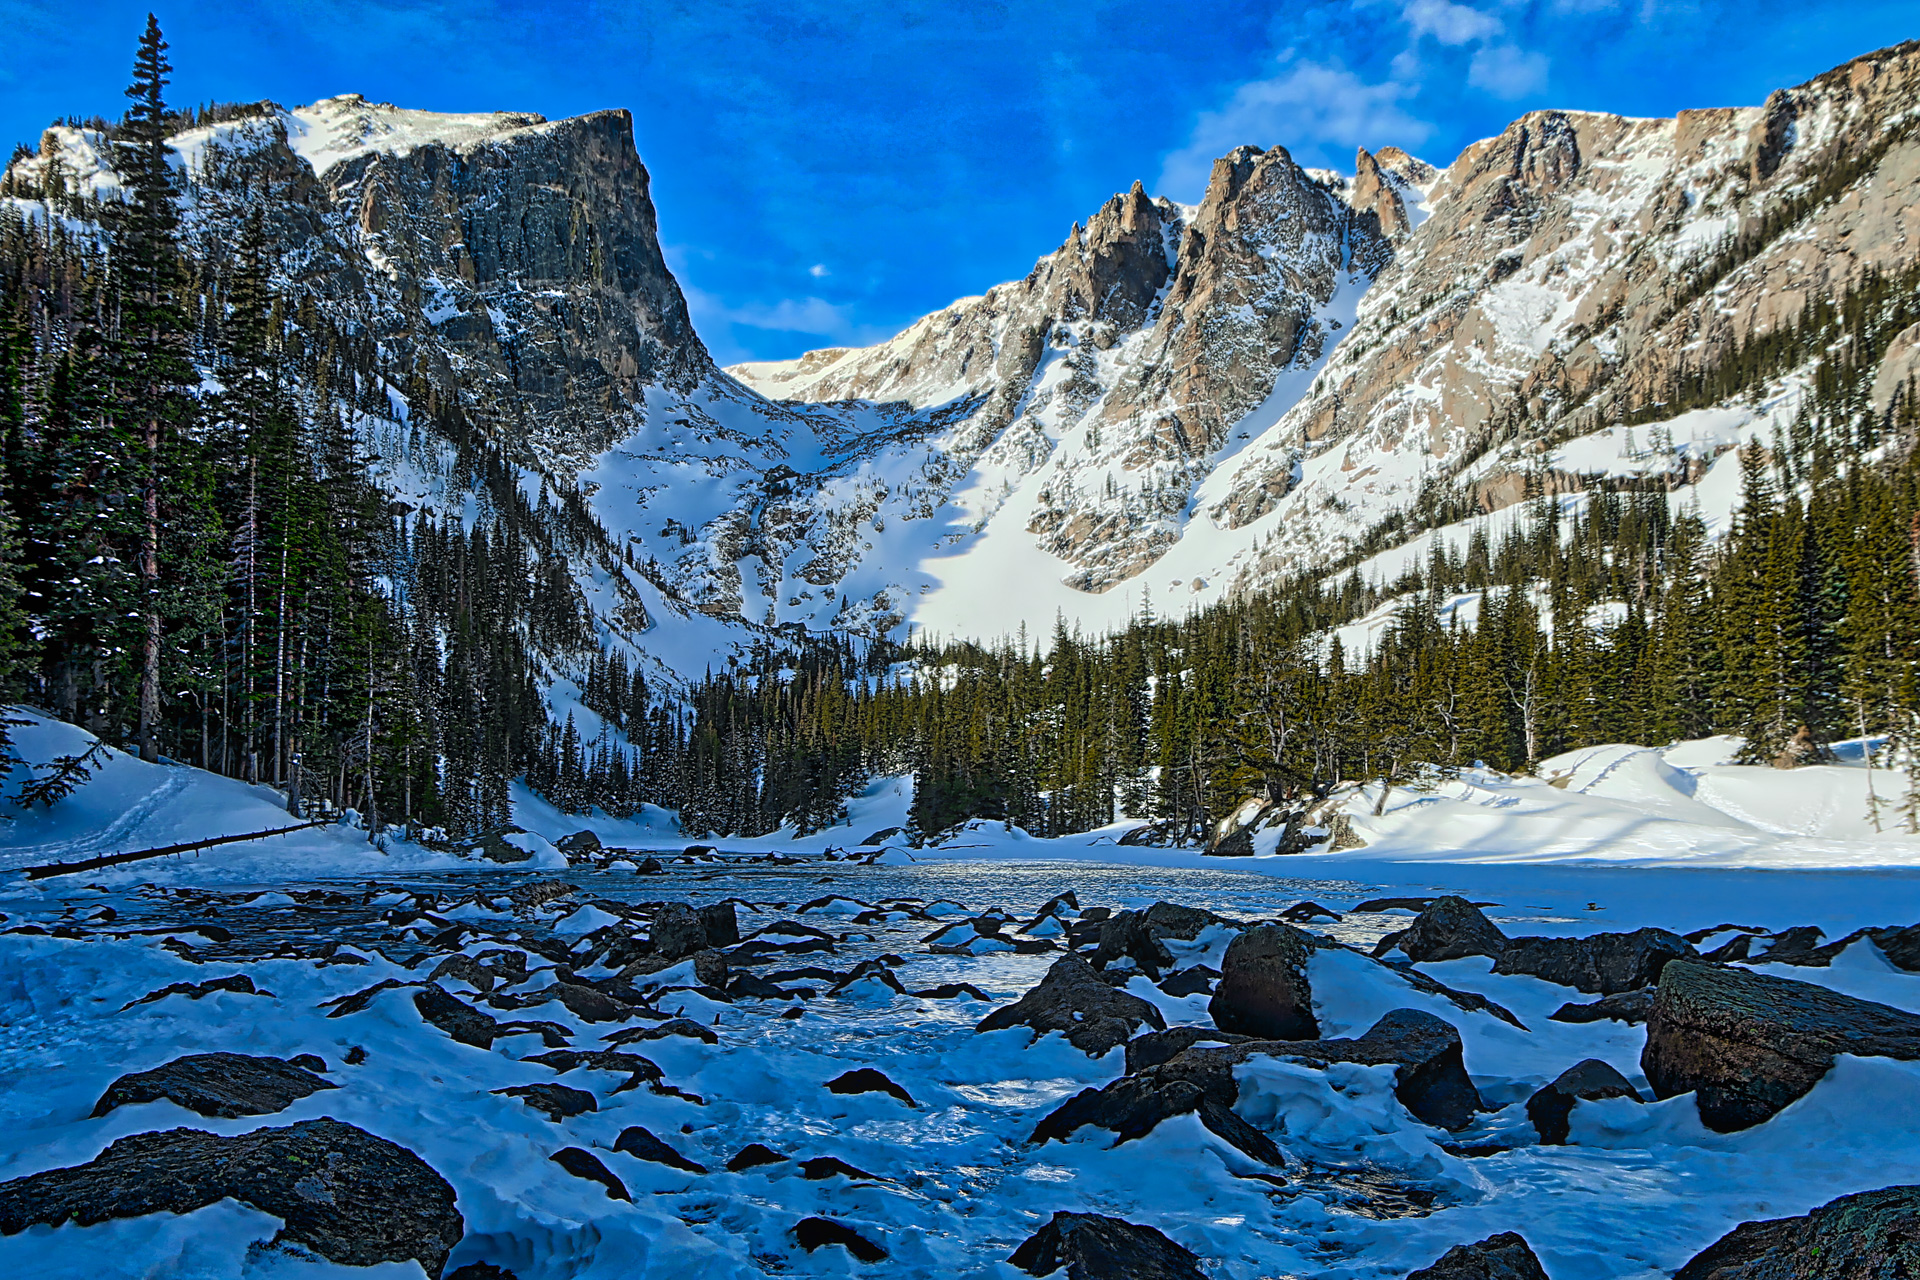 In a stark winter landscape, Hallett Peak rises into the blue sky. On a snowshoeing trip to Emerald Lake, I stopped at Dream Lake to snap a few shots. It was a rare moment, in one of the most popular snowshoeing locations in Rocky Mountain National Park, to get a picture like this, without any people.